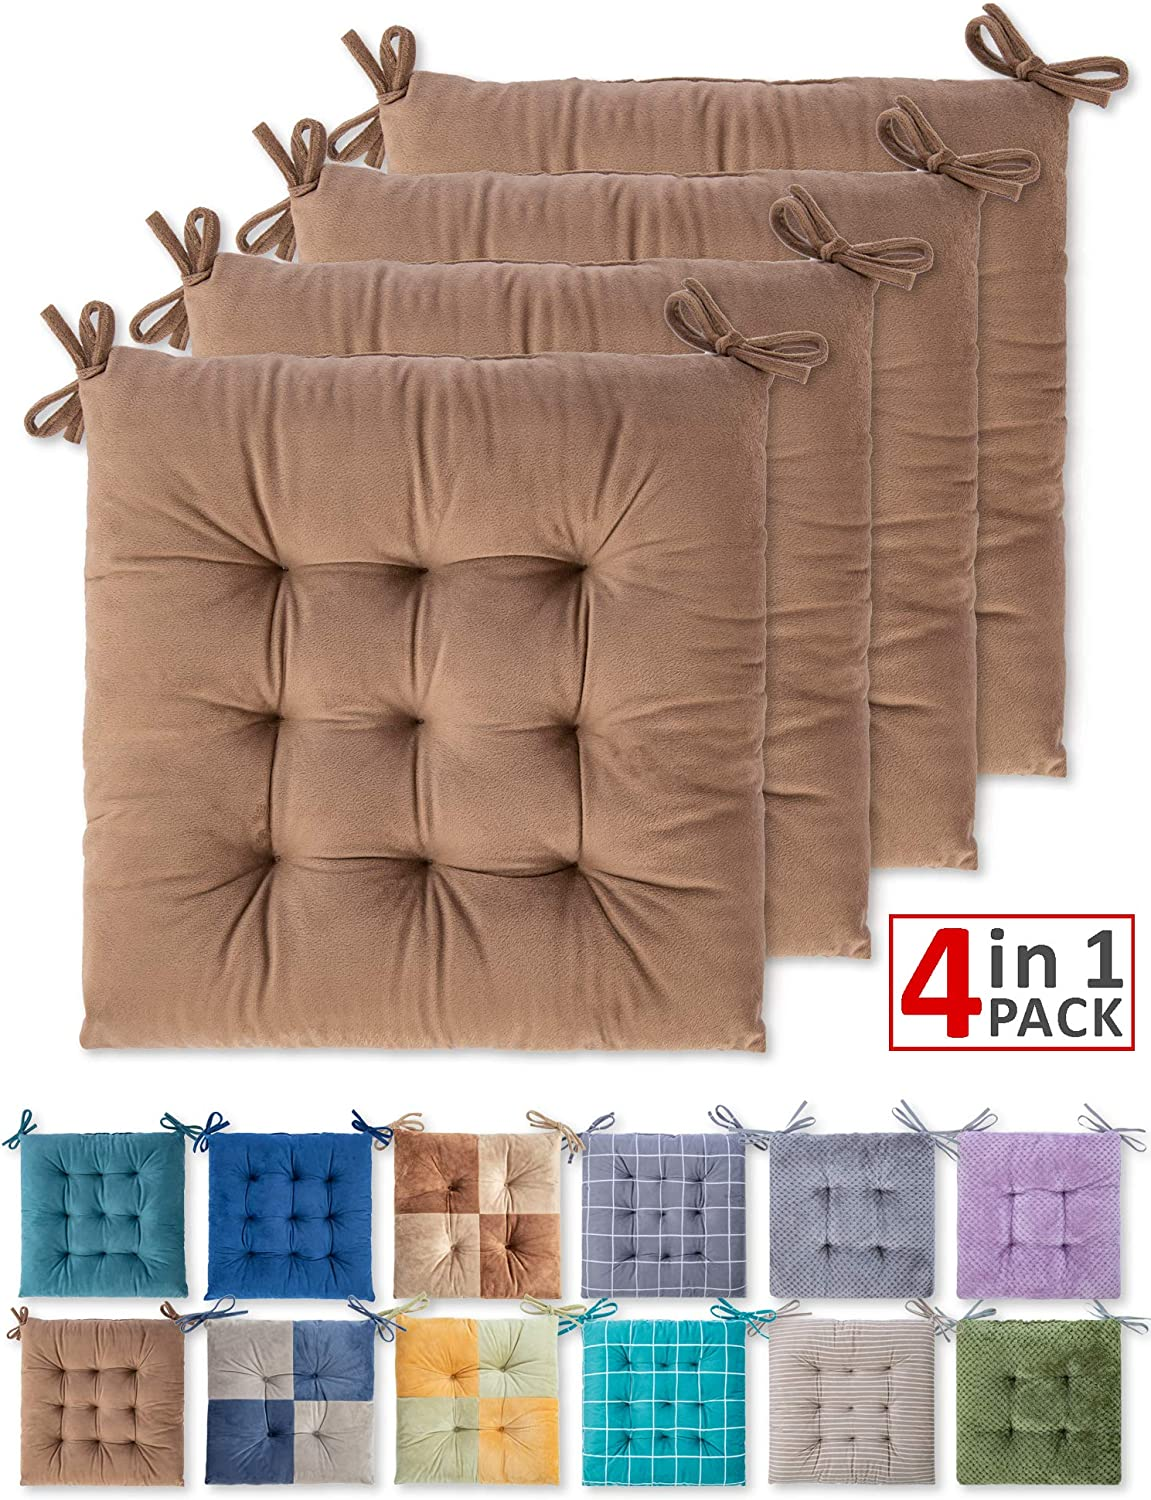 WONDER MIRACLE 4 Pack Seat Cushion/Chair Cushion Pads for Dining Chairs, Office Chair, Car, Floor, Outdoor, Patio,Machine Wash & Dryer Friendly (Flannel 16